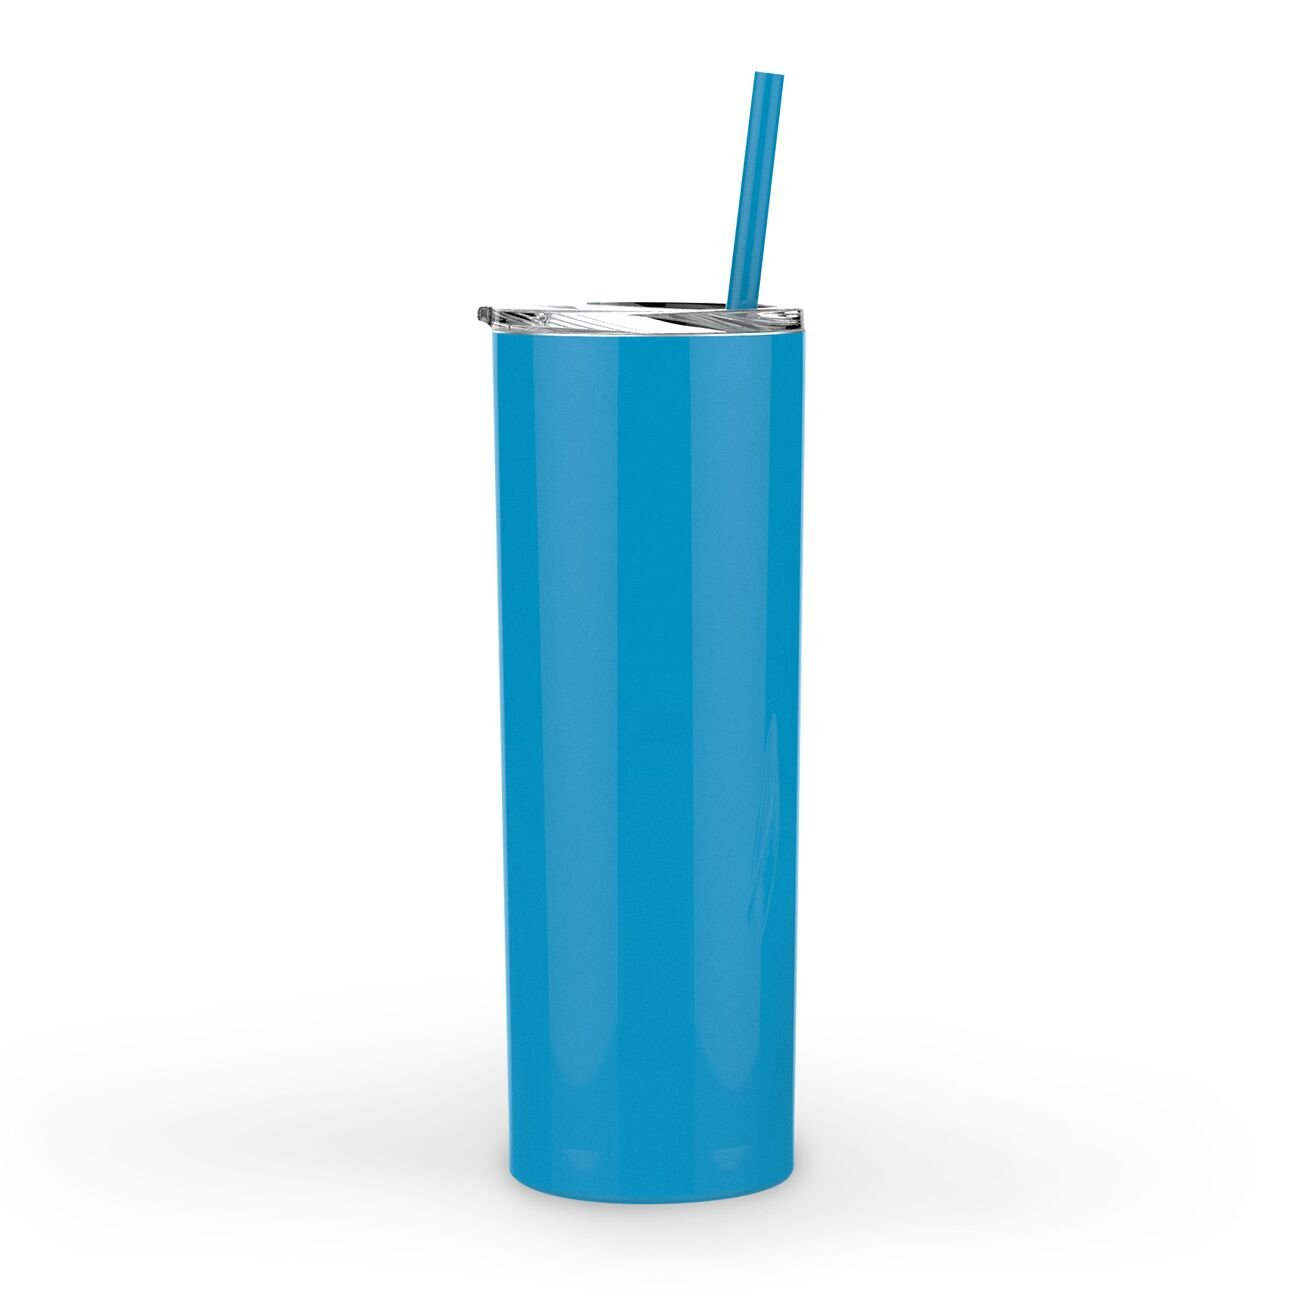 Maars Skinny Steel Stainless Steel Tumbler, 20 oz | Double Wall Vacuum Insulated (Aqua)